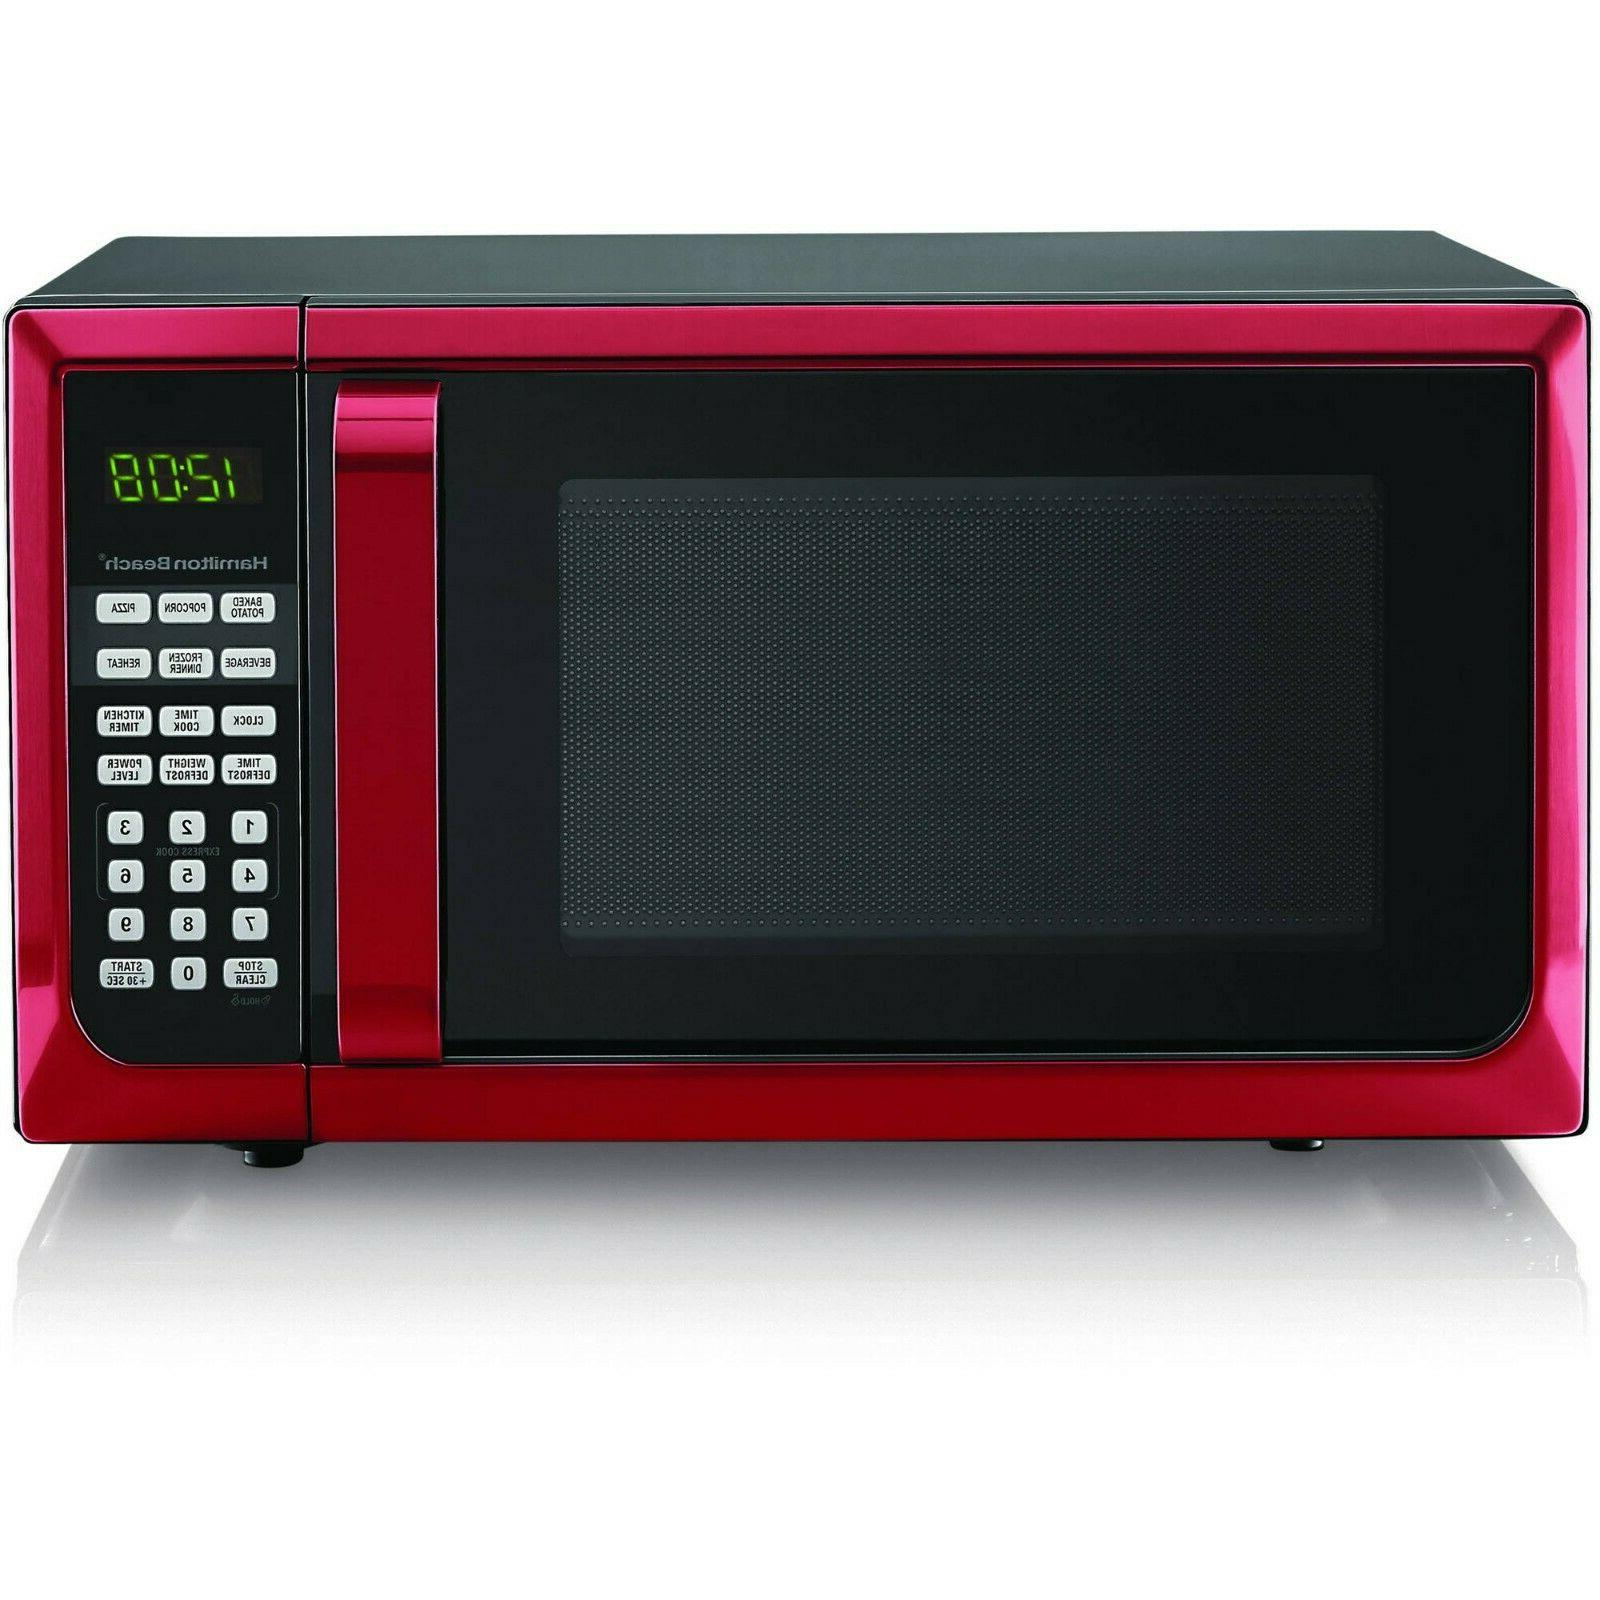 0 7 cu ft red white microwave